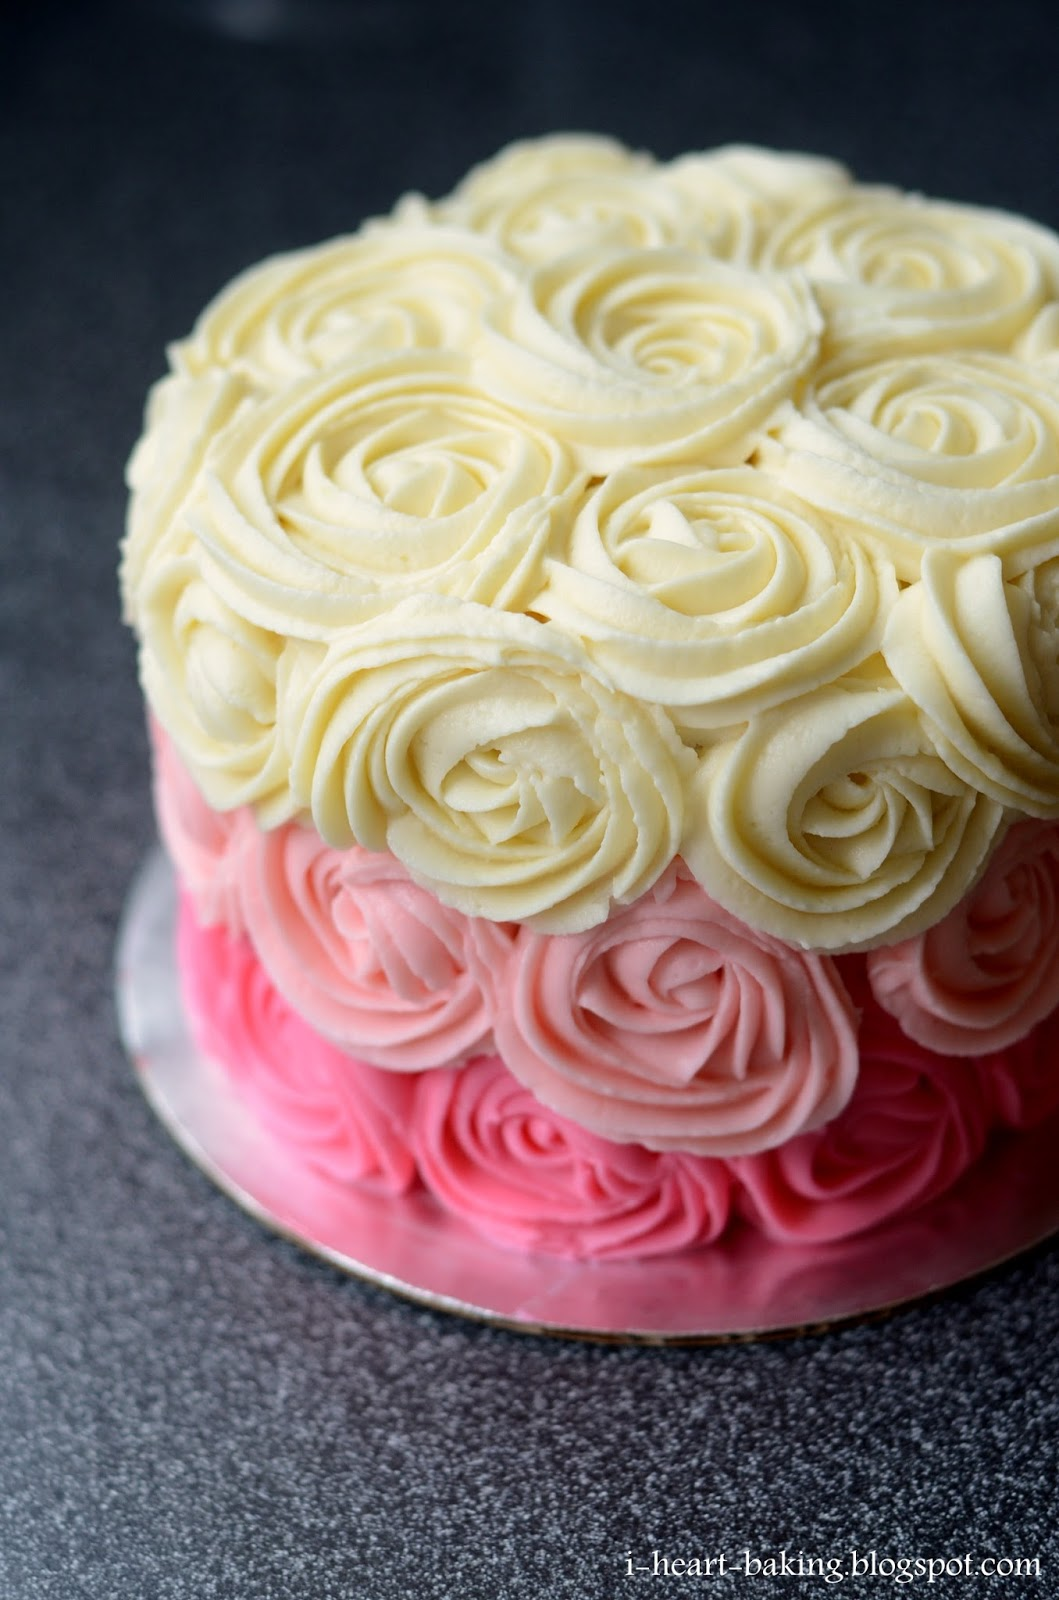 Images For Rose Cake : i heart baking!: pink ombre rose cake